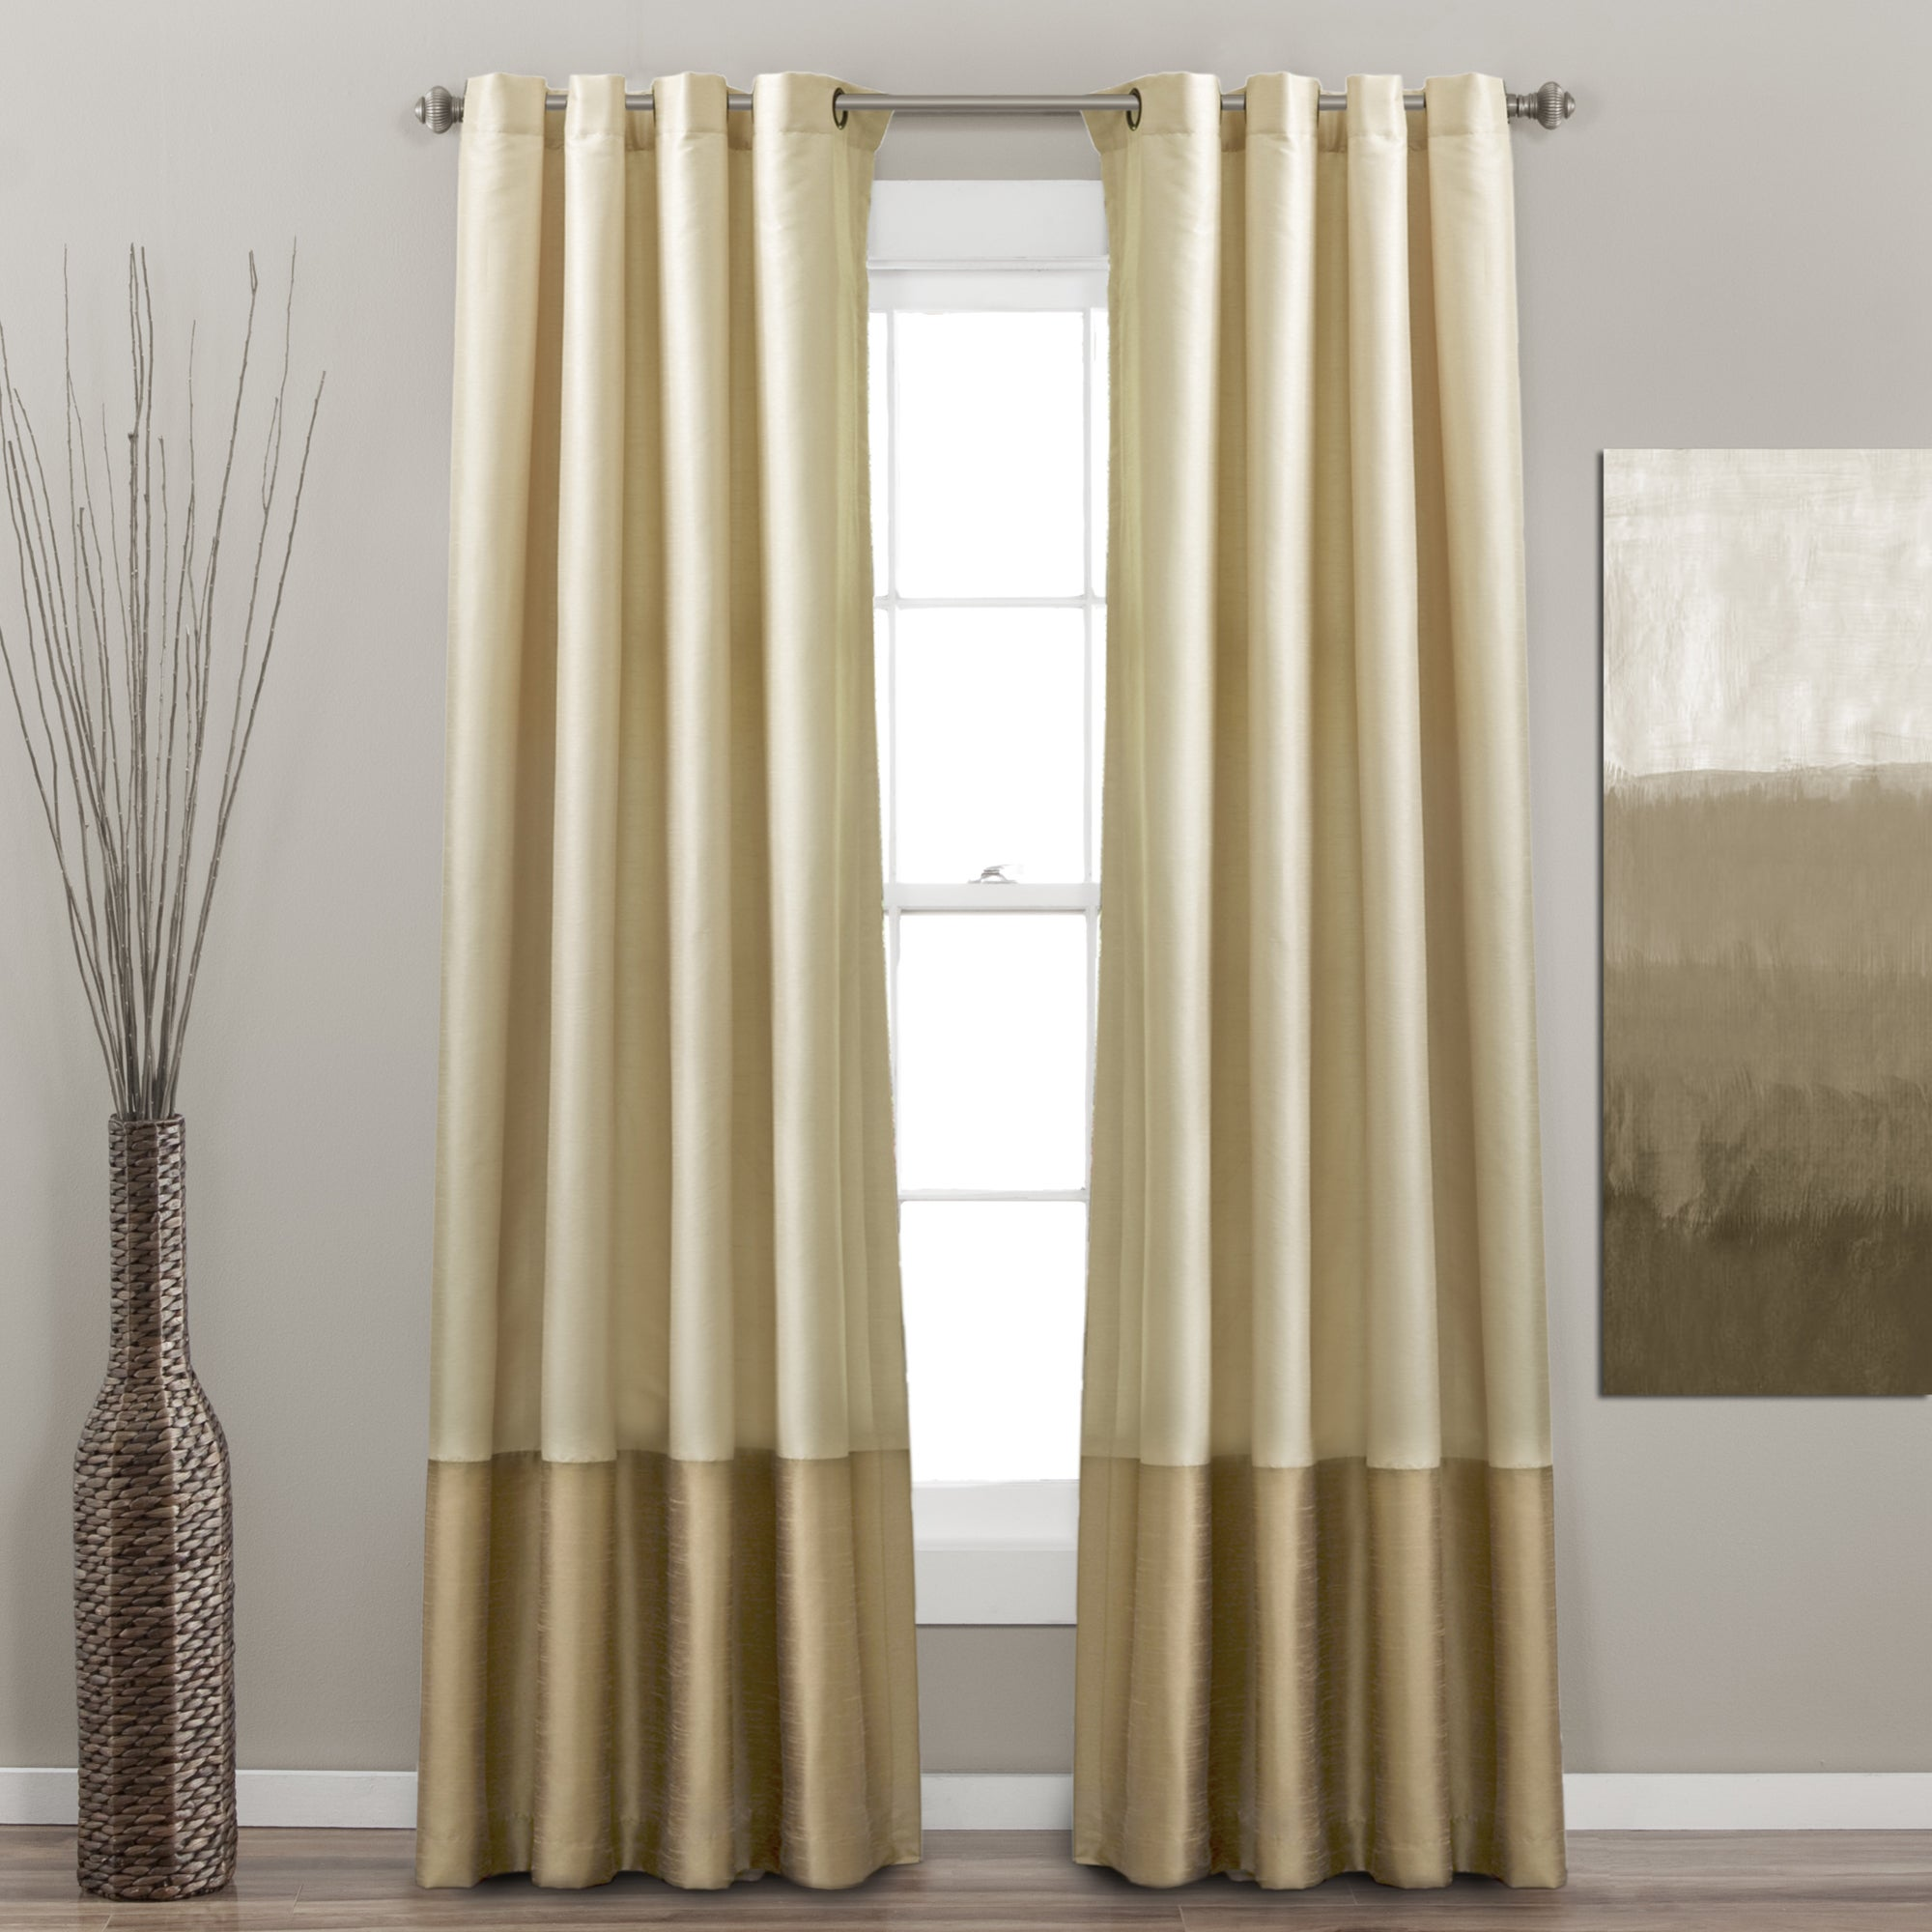 panel drapes baroque deals top com shopping great overstock curtain inch pin grommet pair